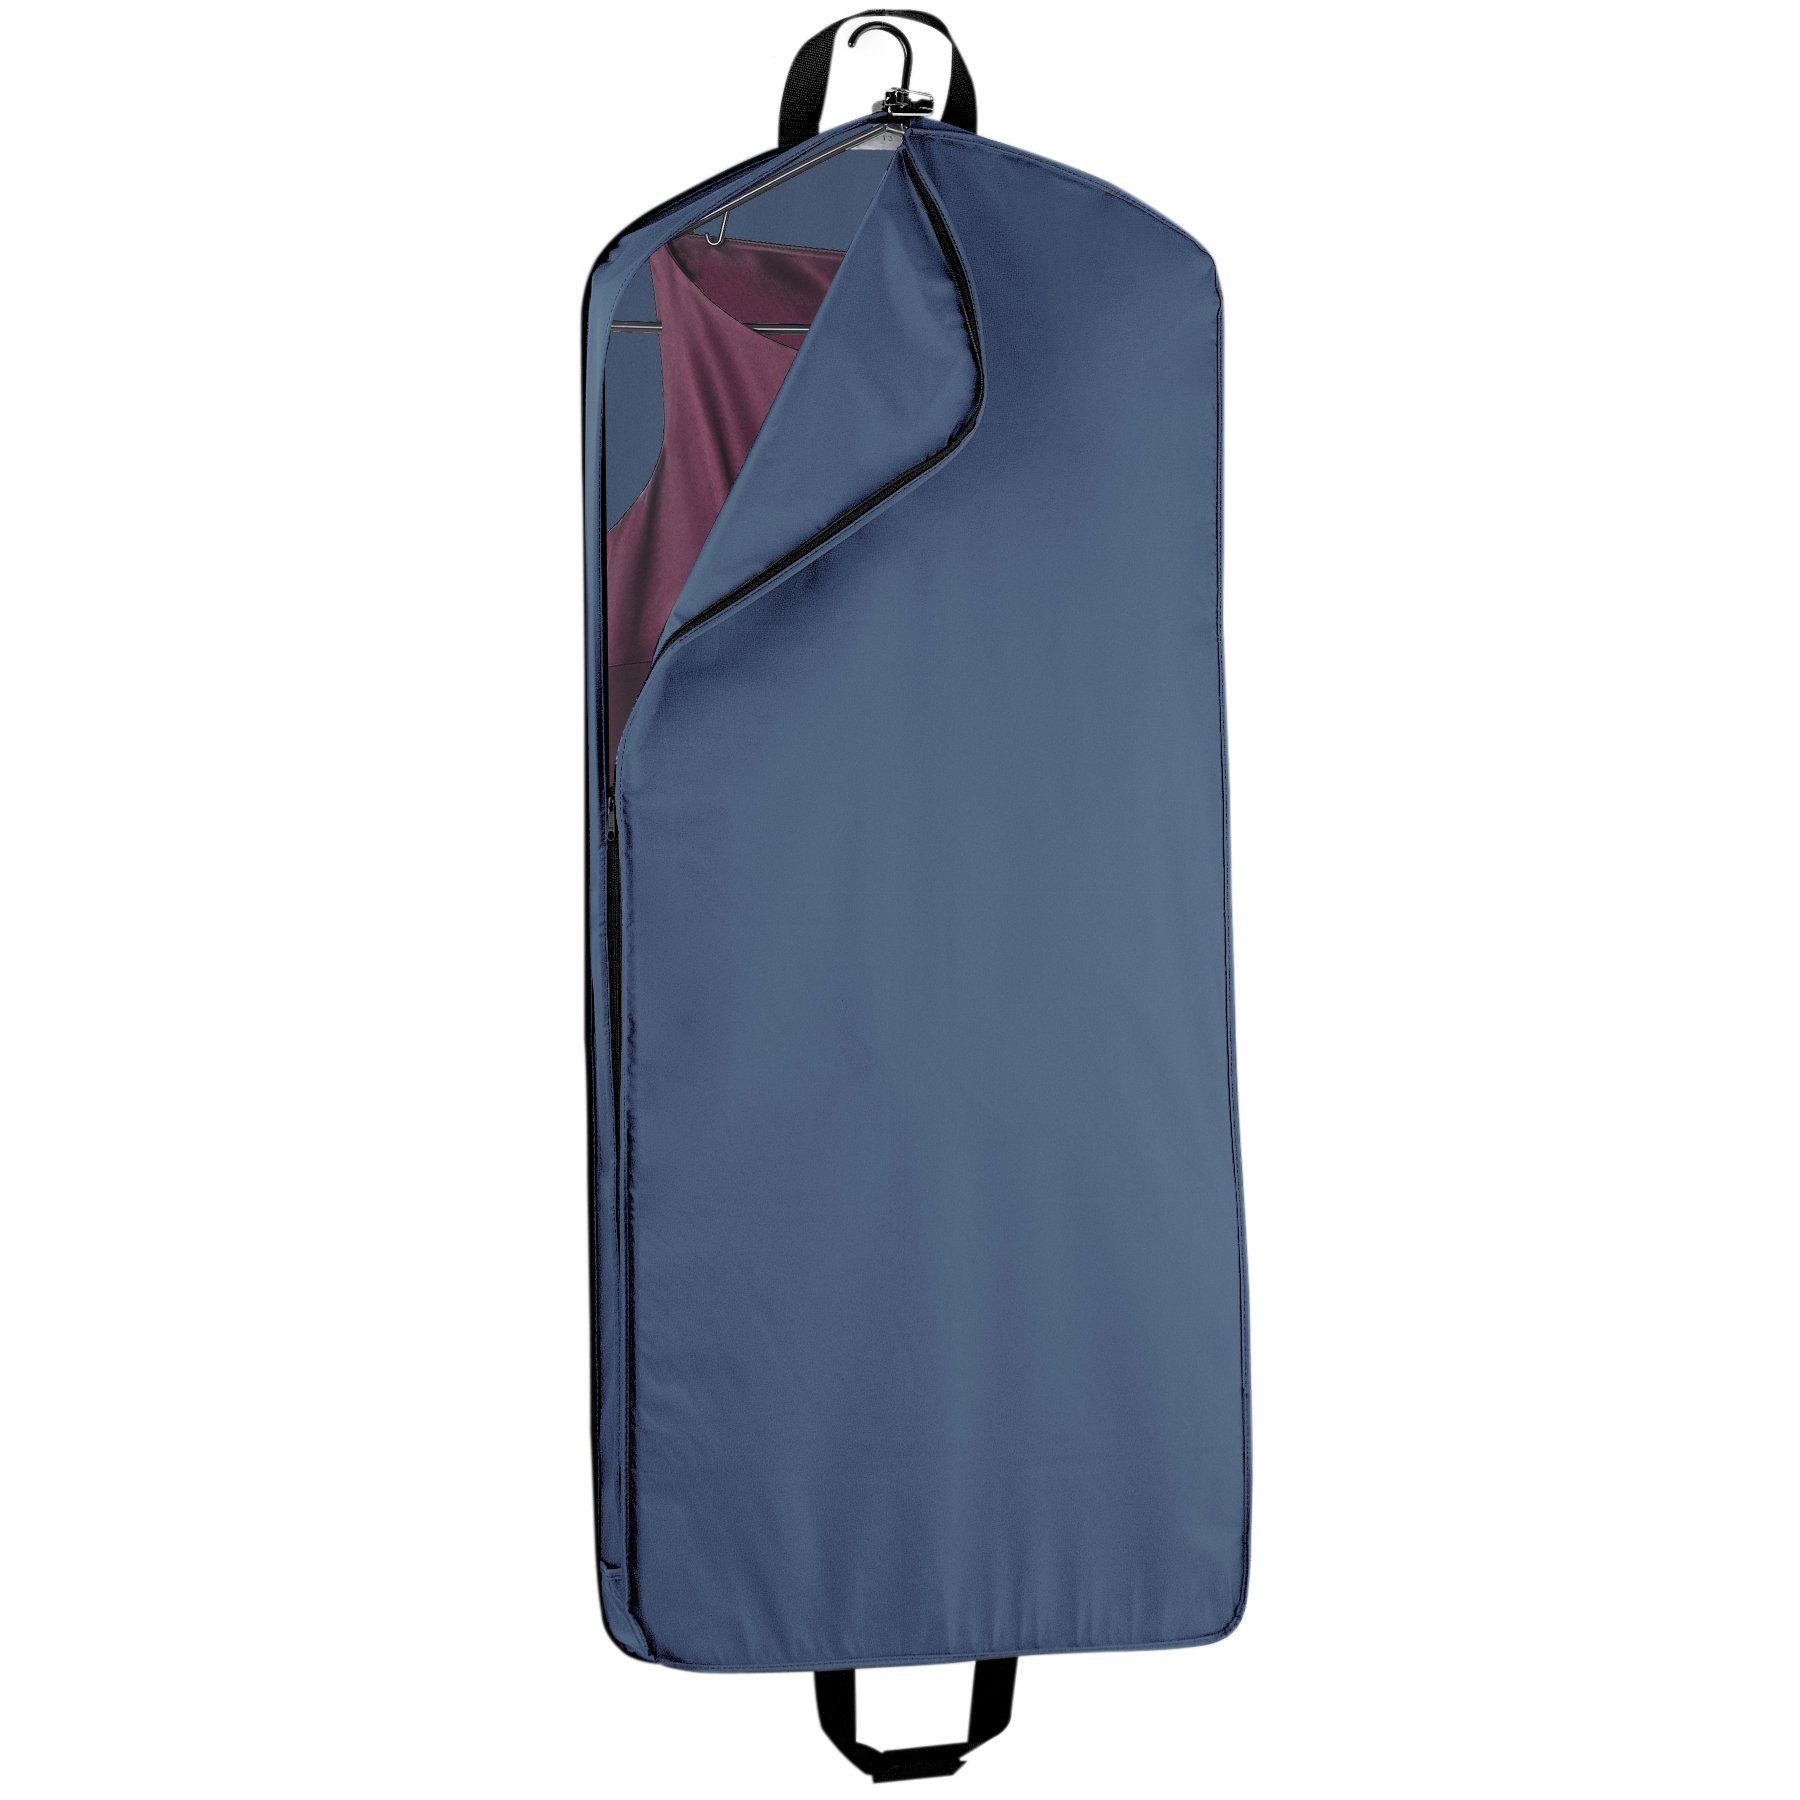 WallyBags 52-inch Dress Length, Carry-On, XL Garment Bag with Two Pockets and Extra Capacity by Wally Bags (Image #2)